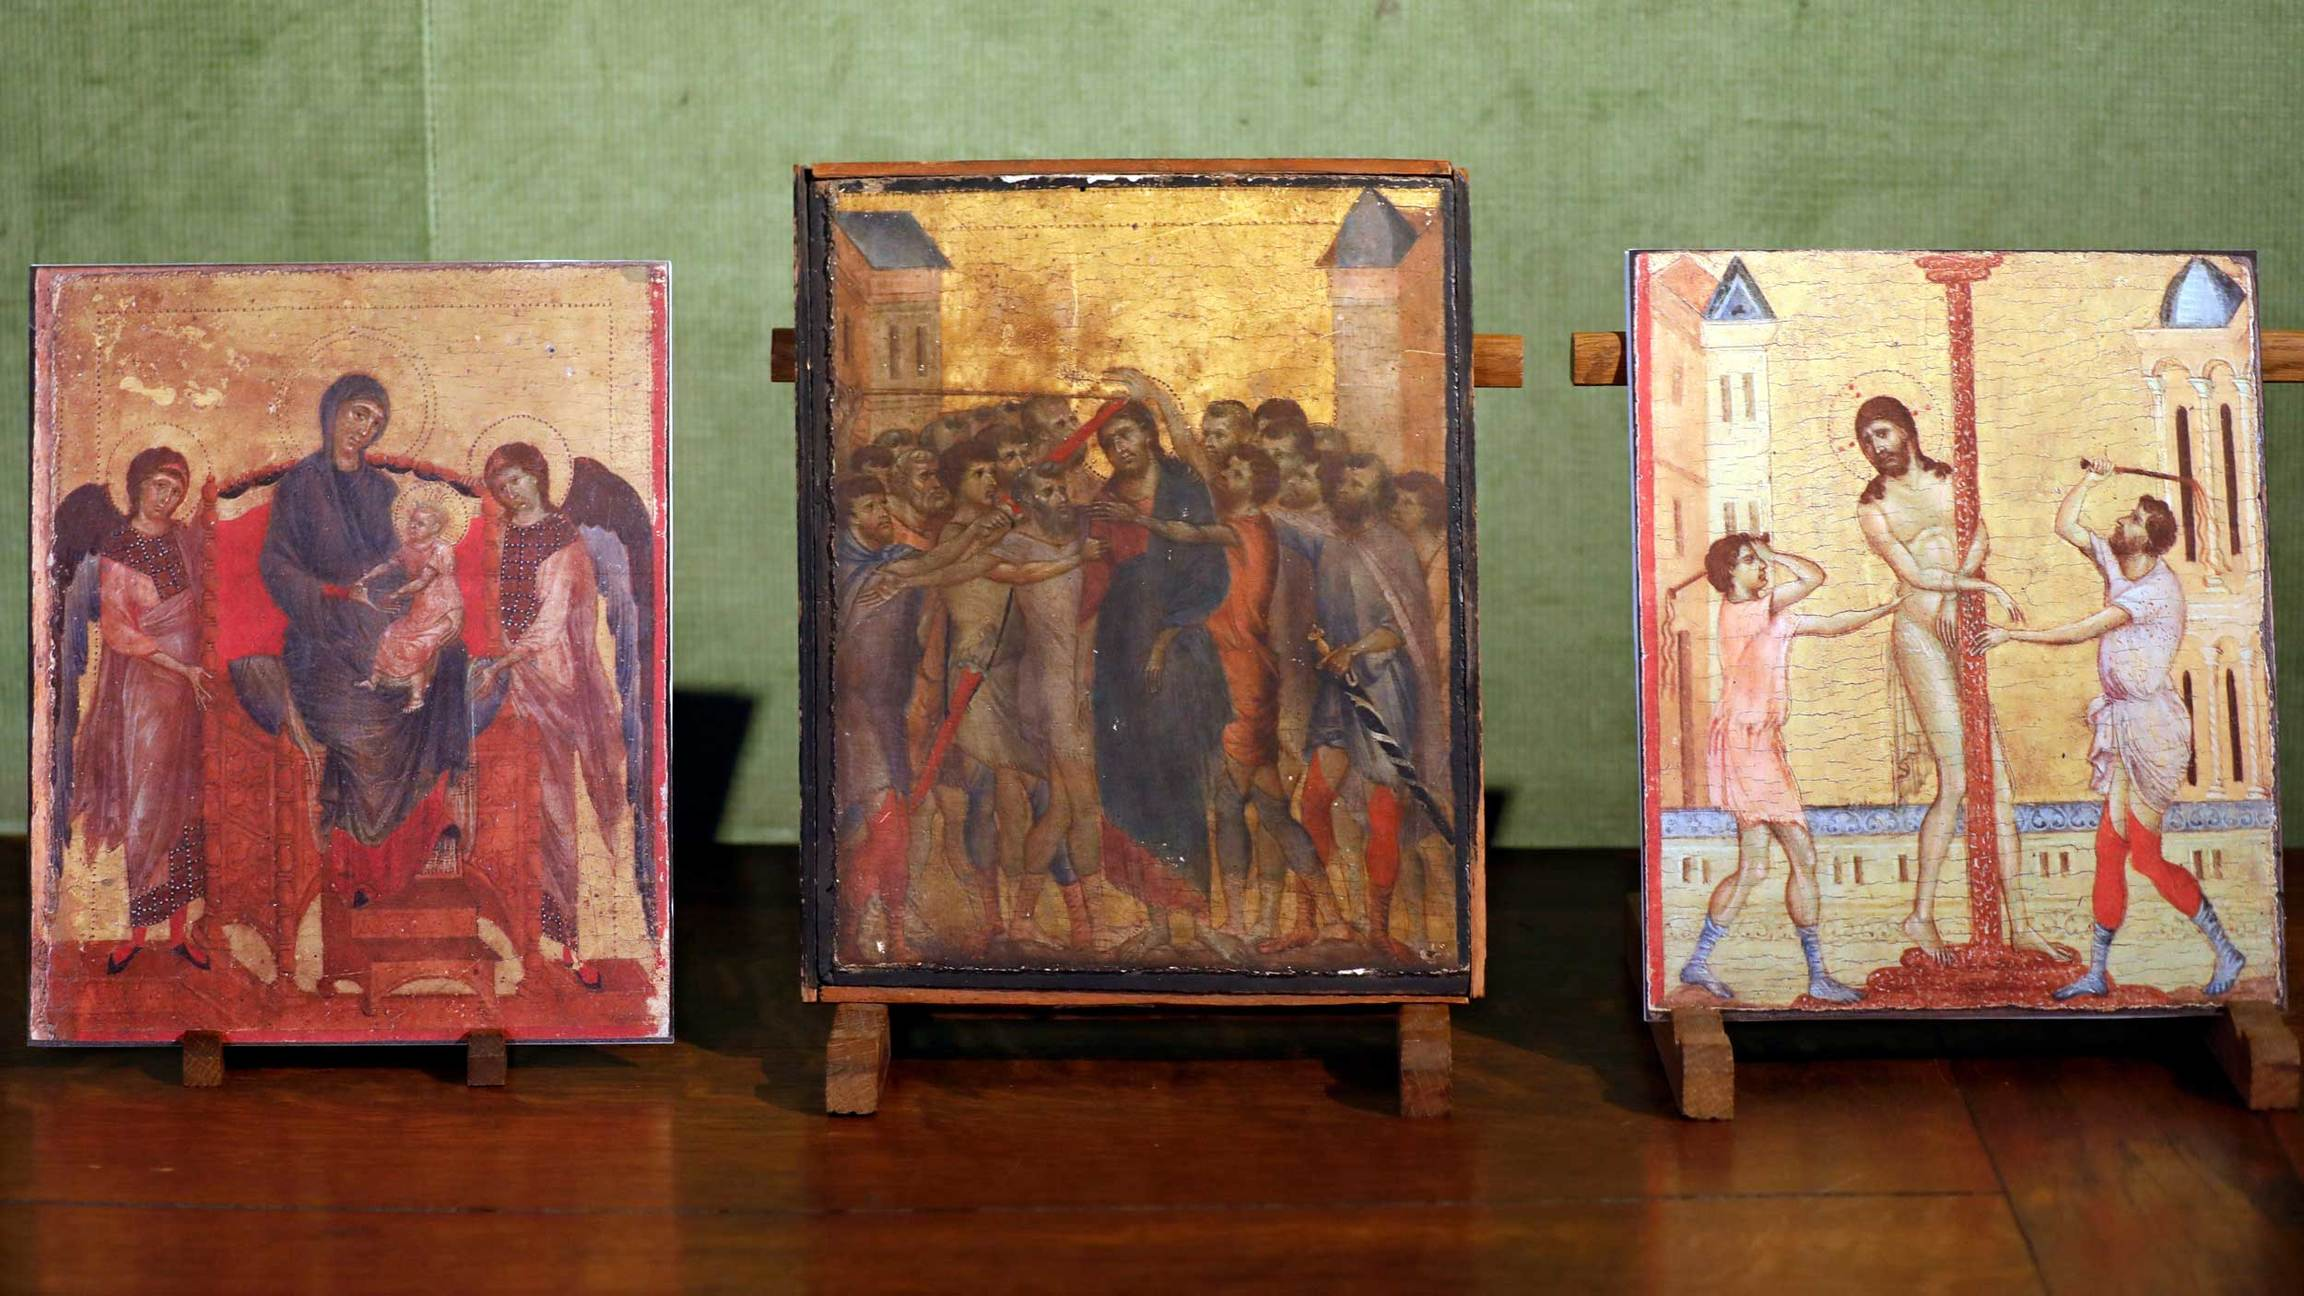 Three religious images are displayed side by side